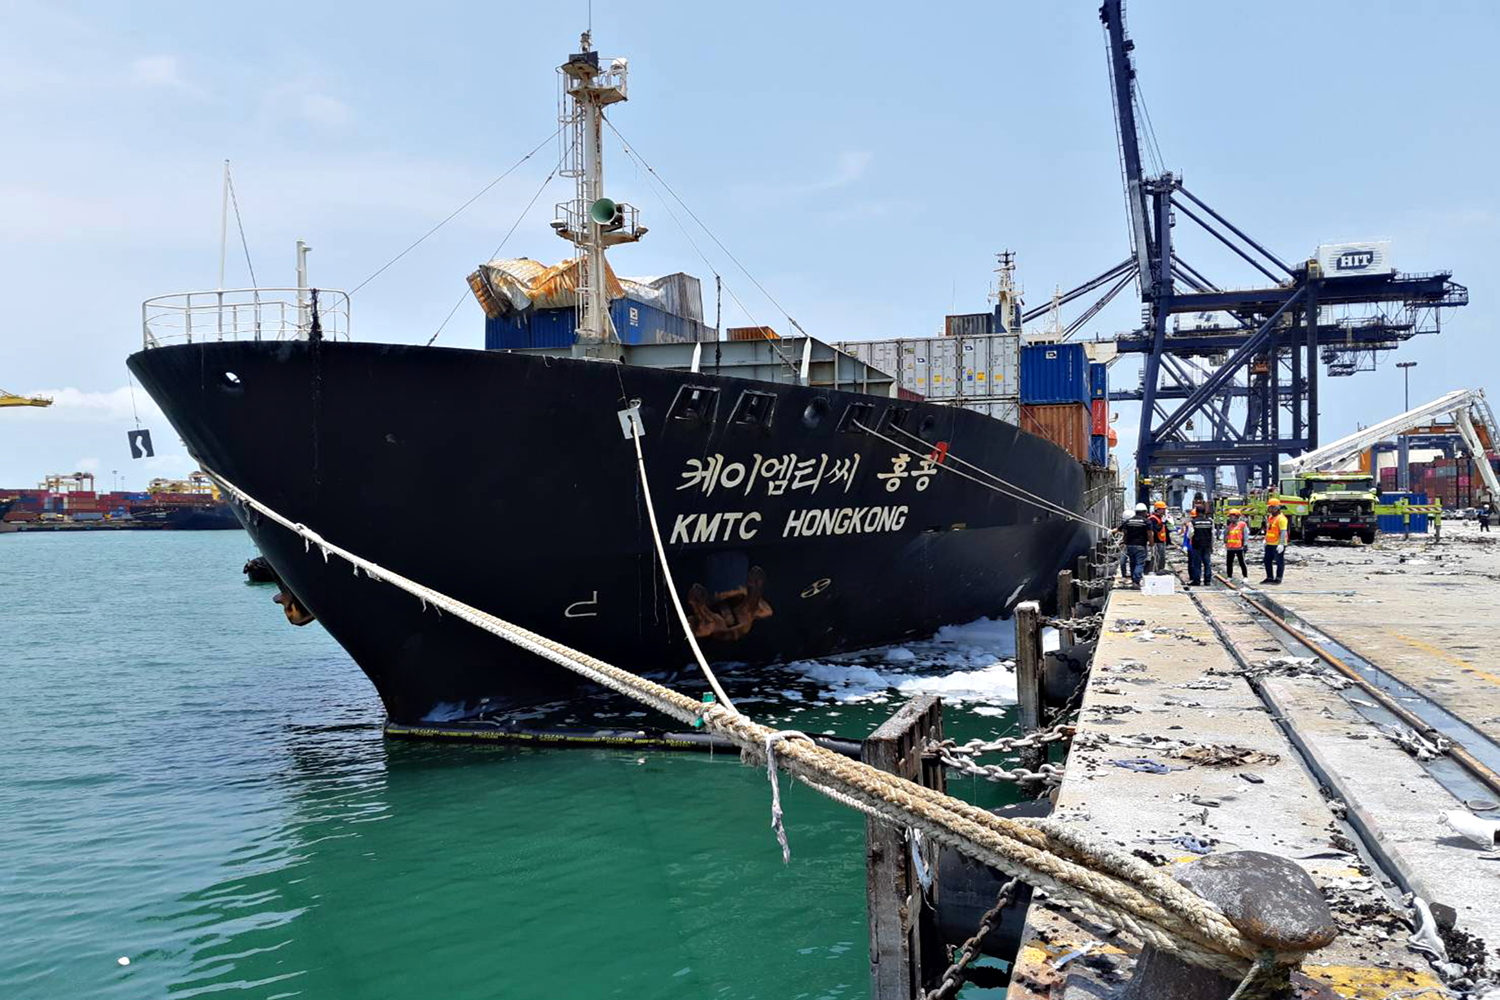 Officials on Tuesday test the water around the HTMC Hongkong cargo ship which carried containers that exploded injuring 133 people on Saturday. (Photo by Pollution Control Department)